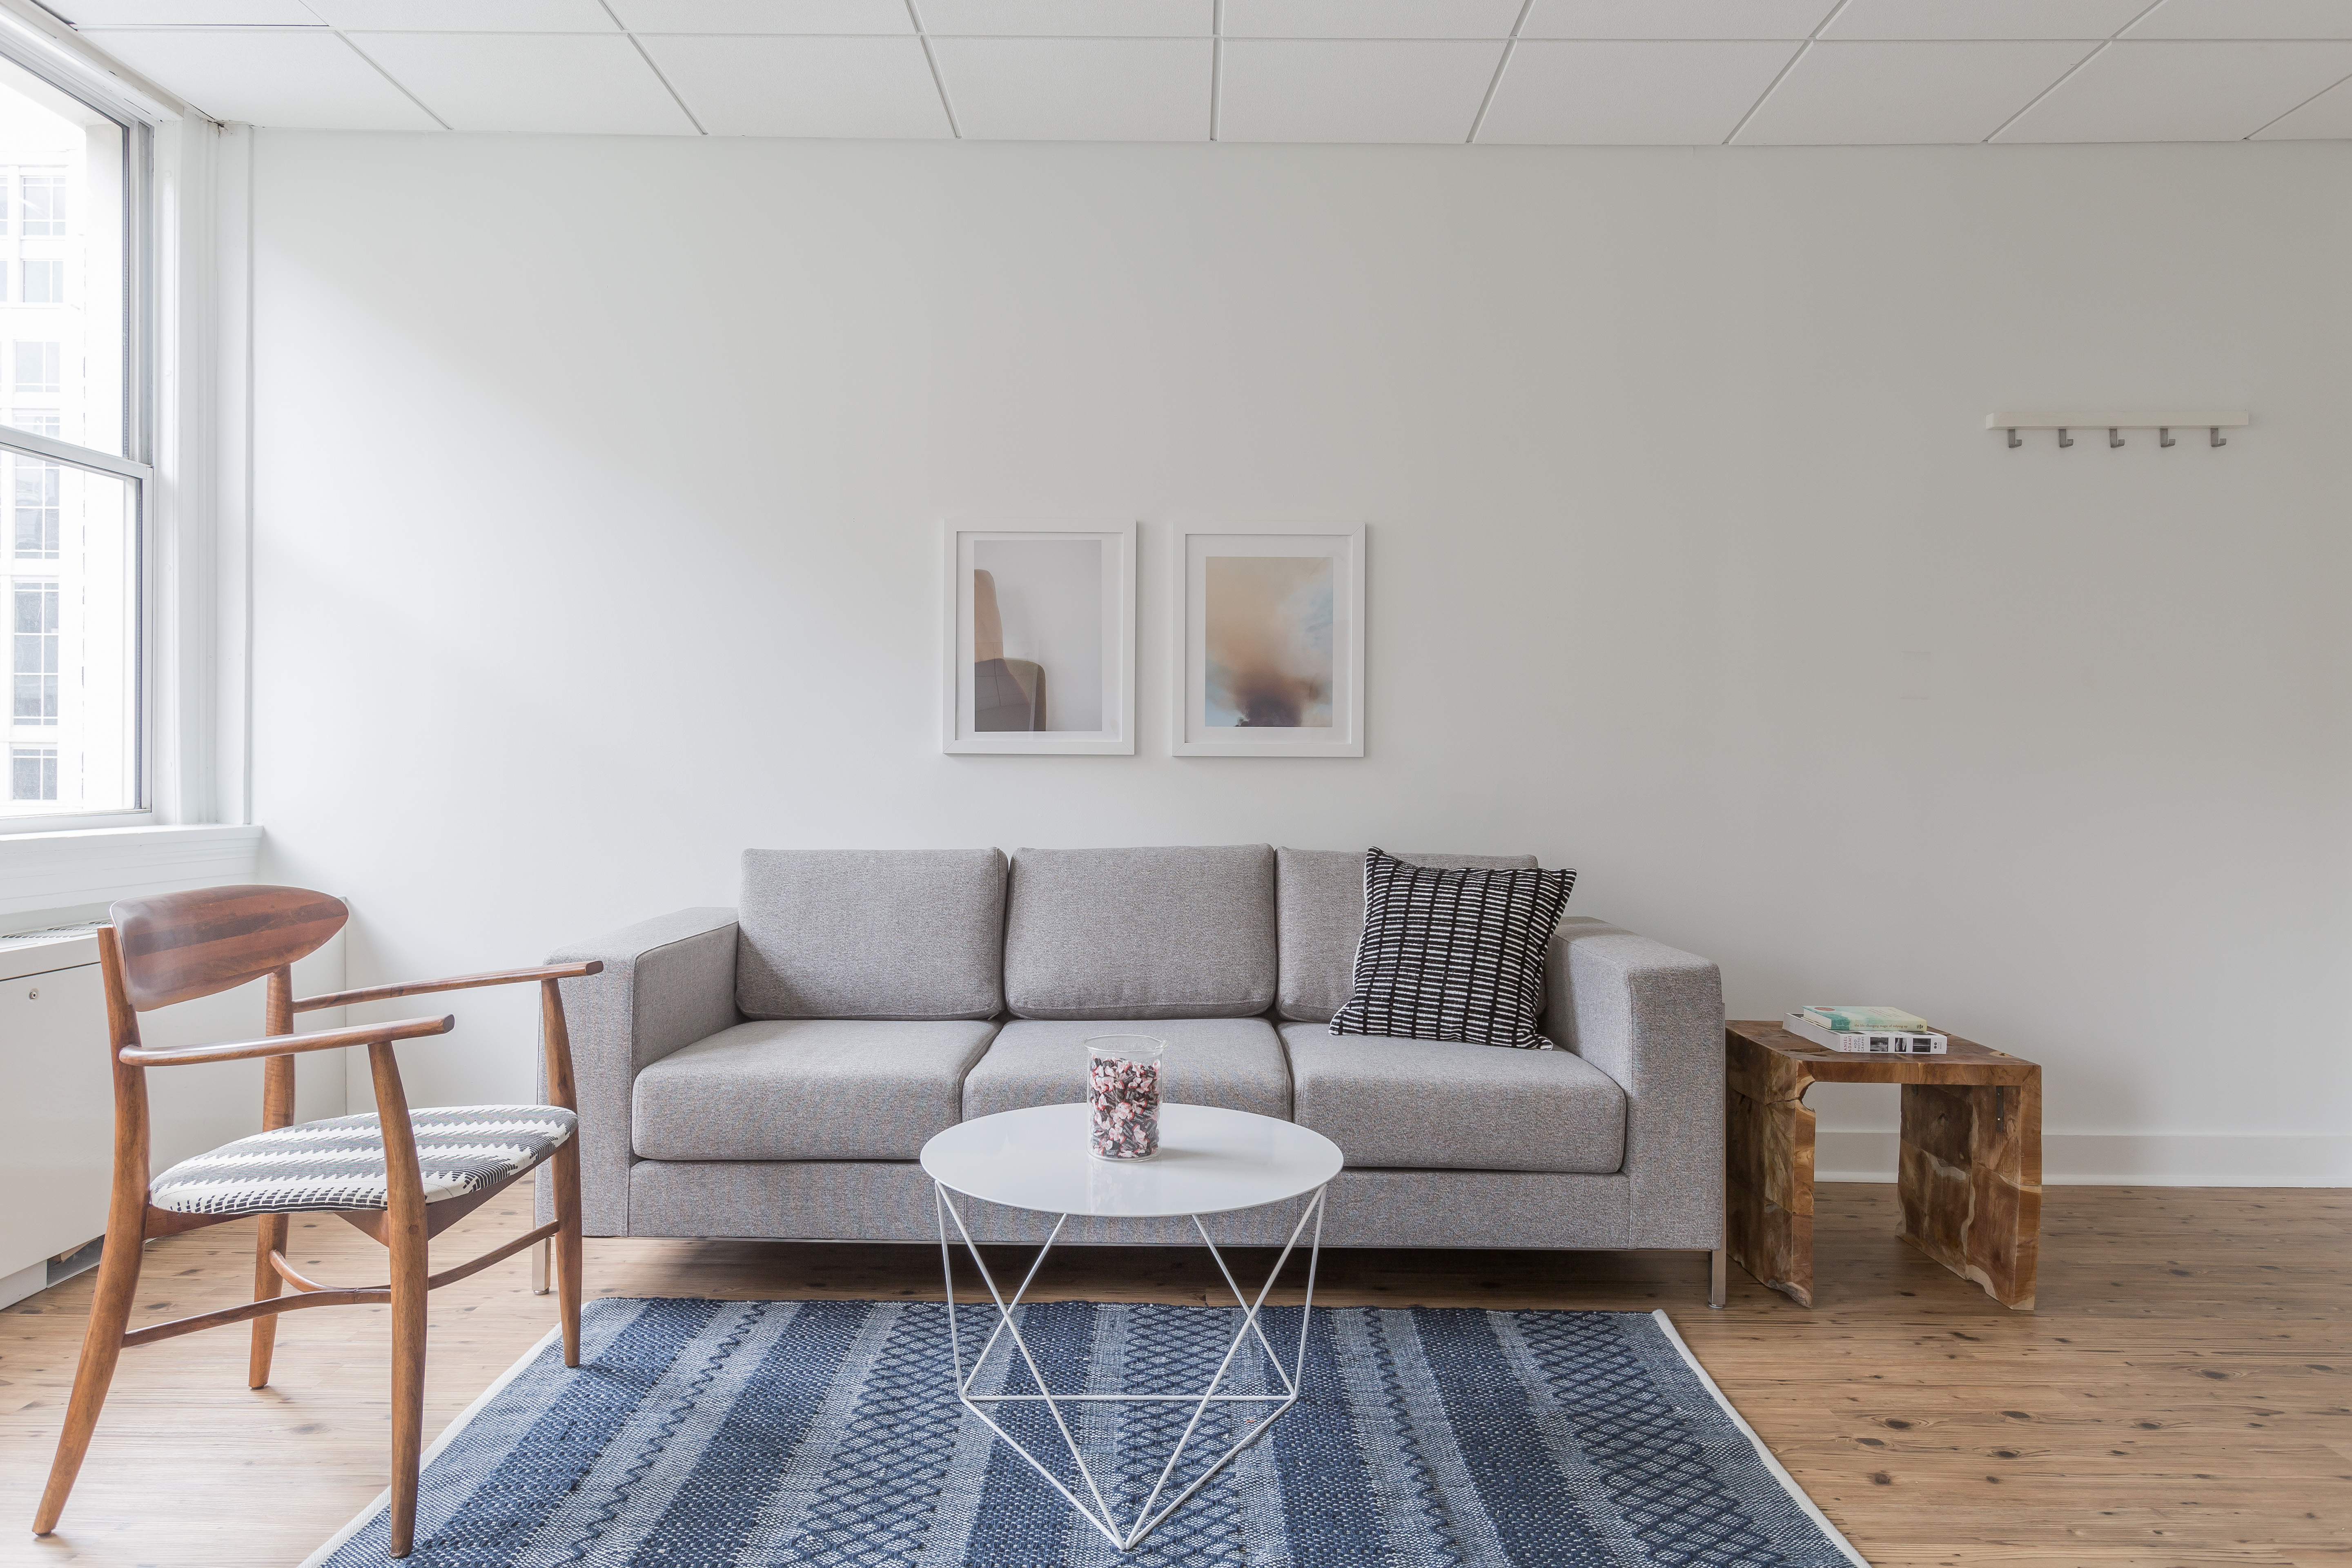 Meeting Rooms in Washington DC: Hourly Office Space Rentals | Breather